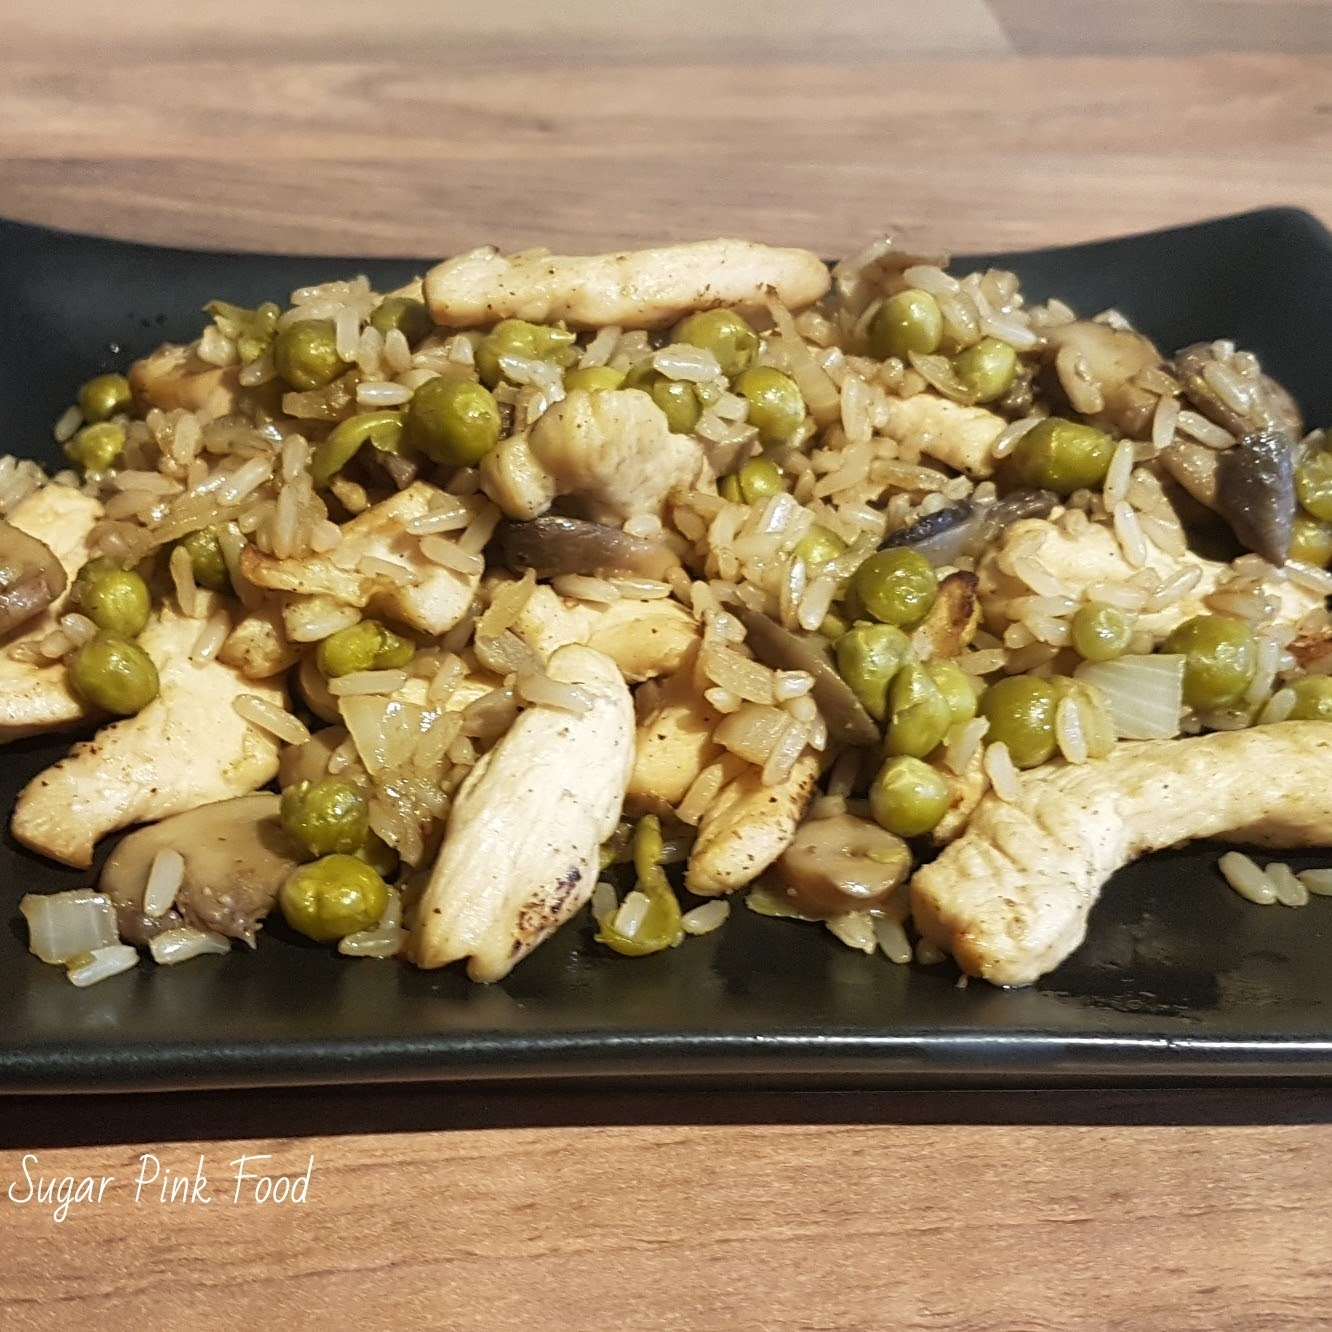 Actirfy Slimming World Friendly Chicken Fried Rice Recipe